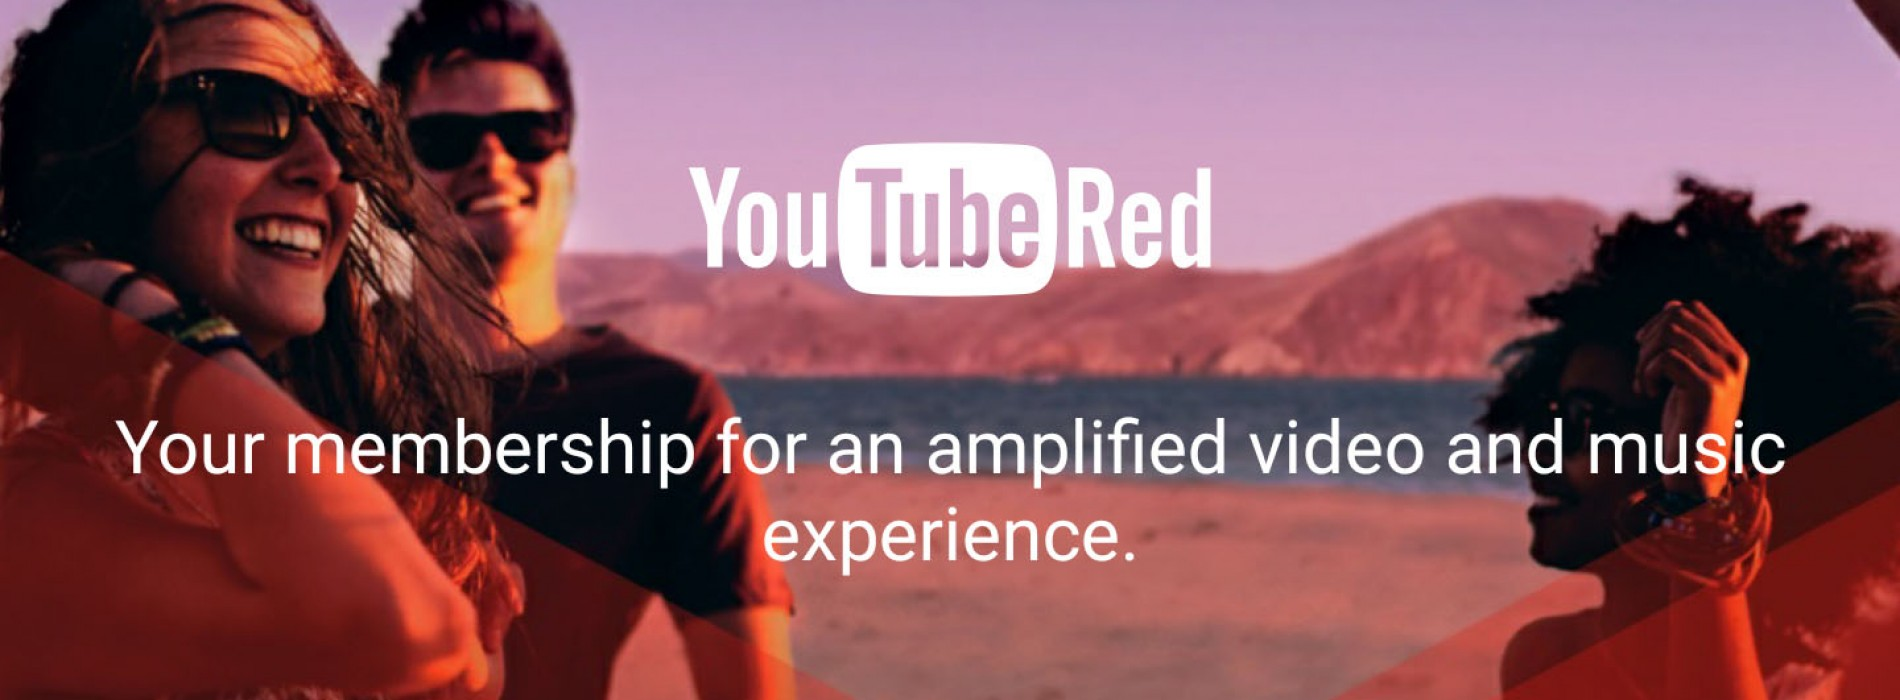 How To: Download YouTube videos with YouTube Red